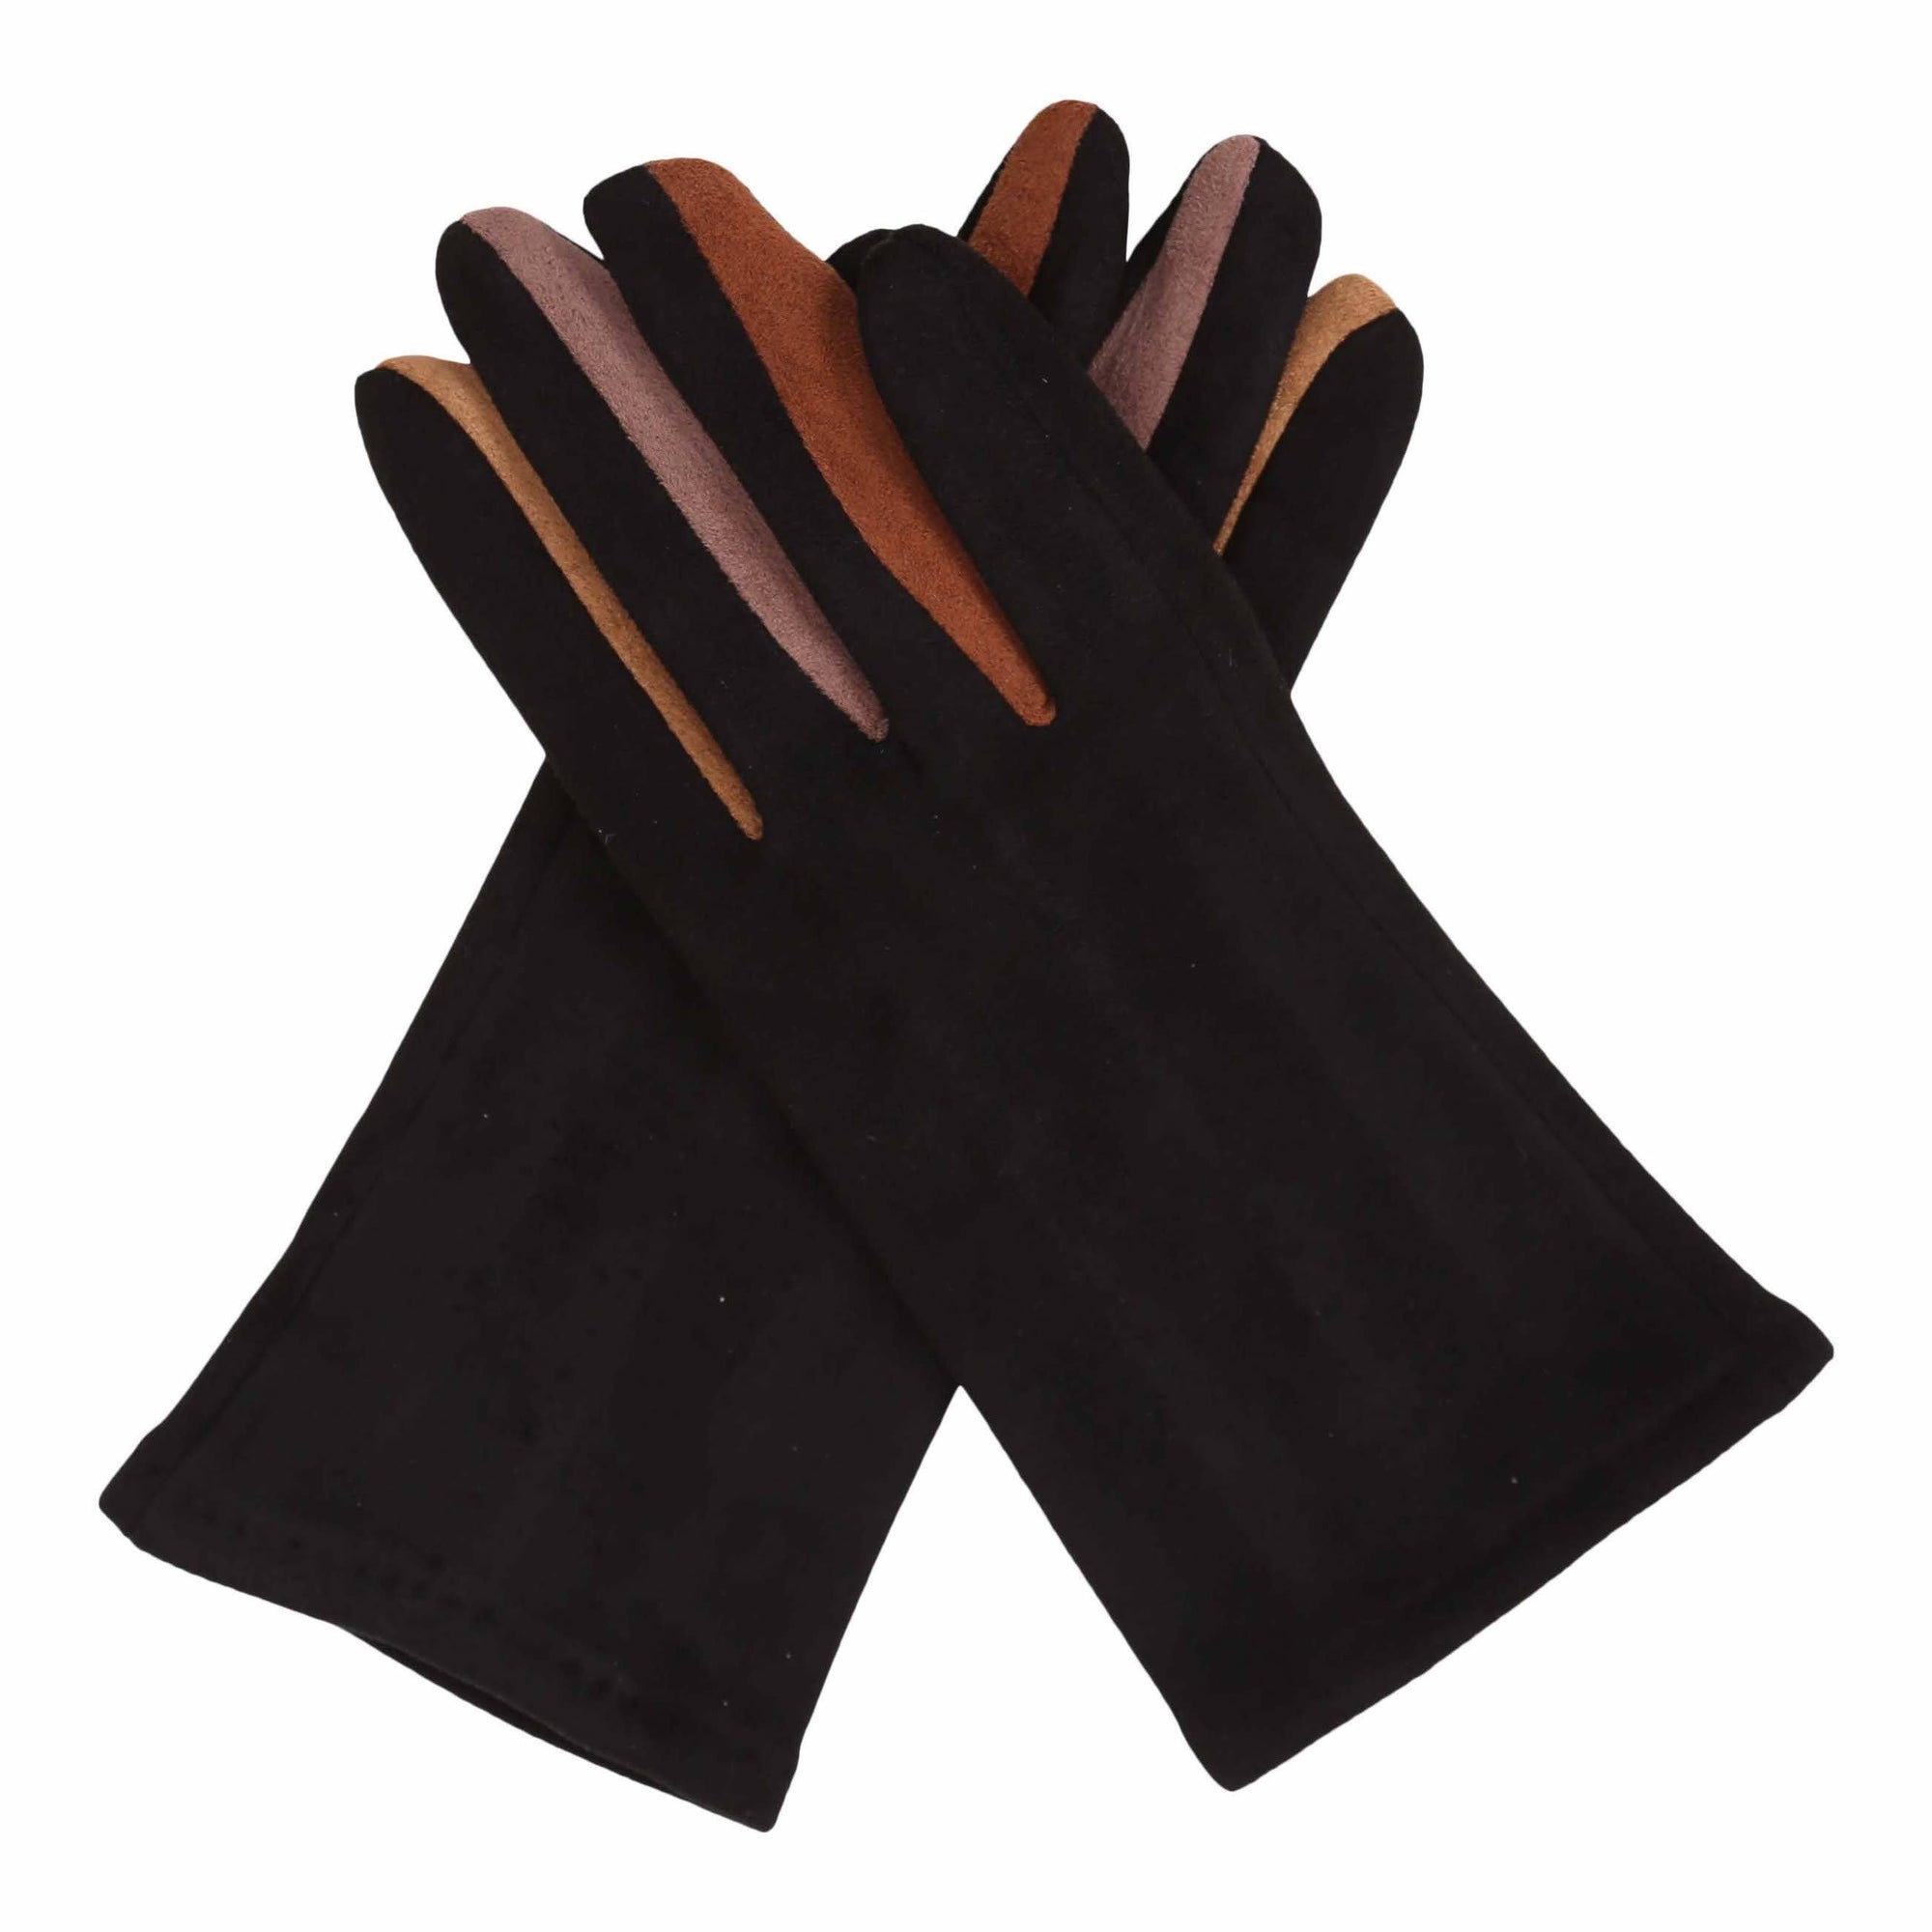 Pair of black texting gloves with neutral colored gussets between each finger.